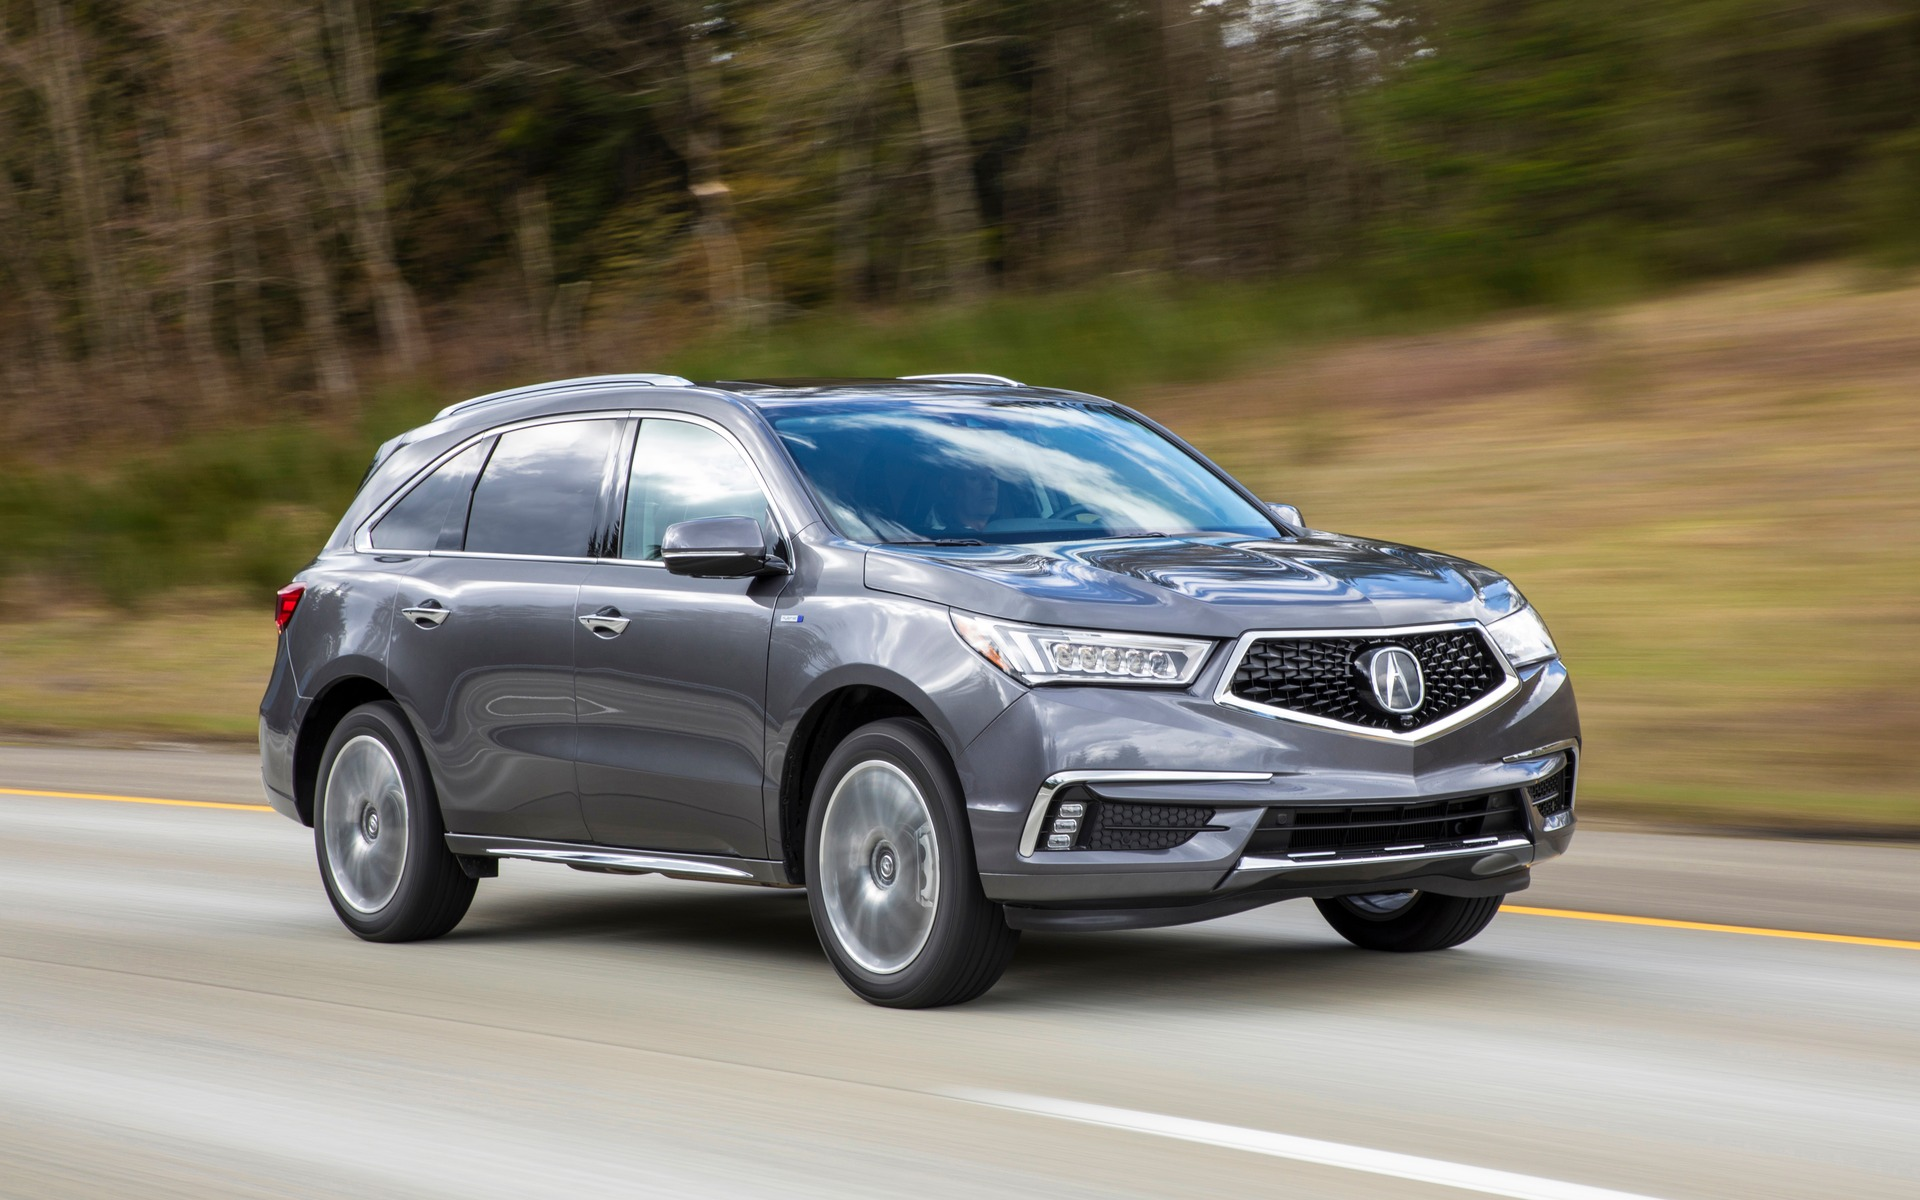 2019 Acura Mdx Specifications The Car Guide